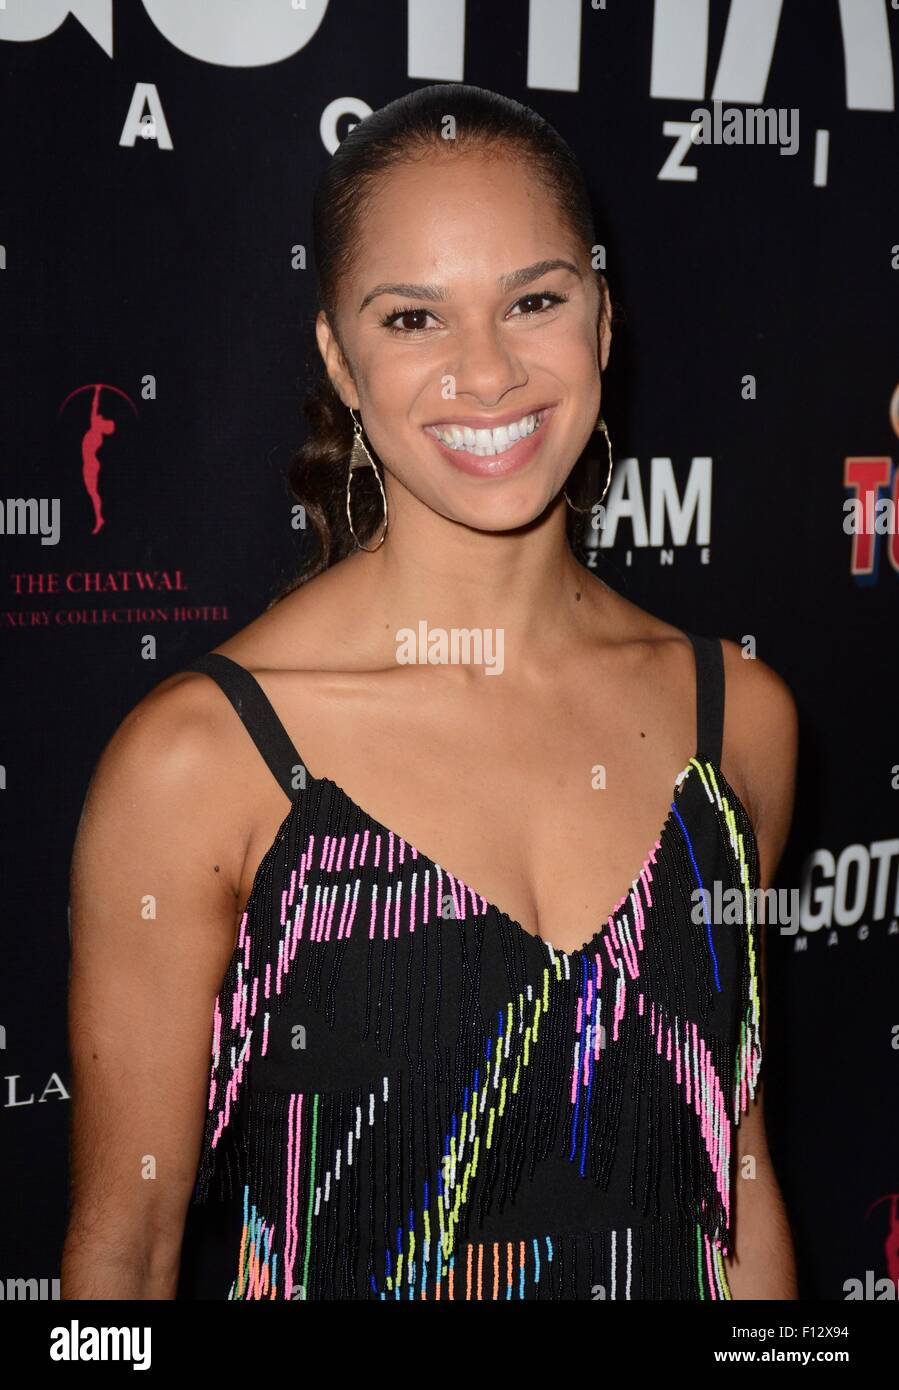 New York, NY, USA. 25th Aug, 2015. Misty Copeland at a public appearance for Misty Copeland Debuts on Broadway in - Stock Image